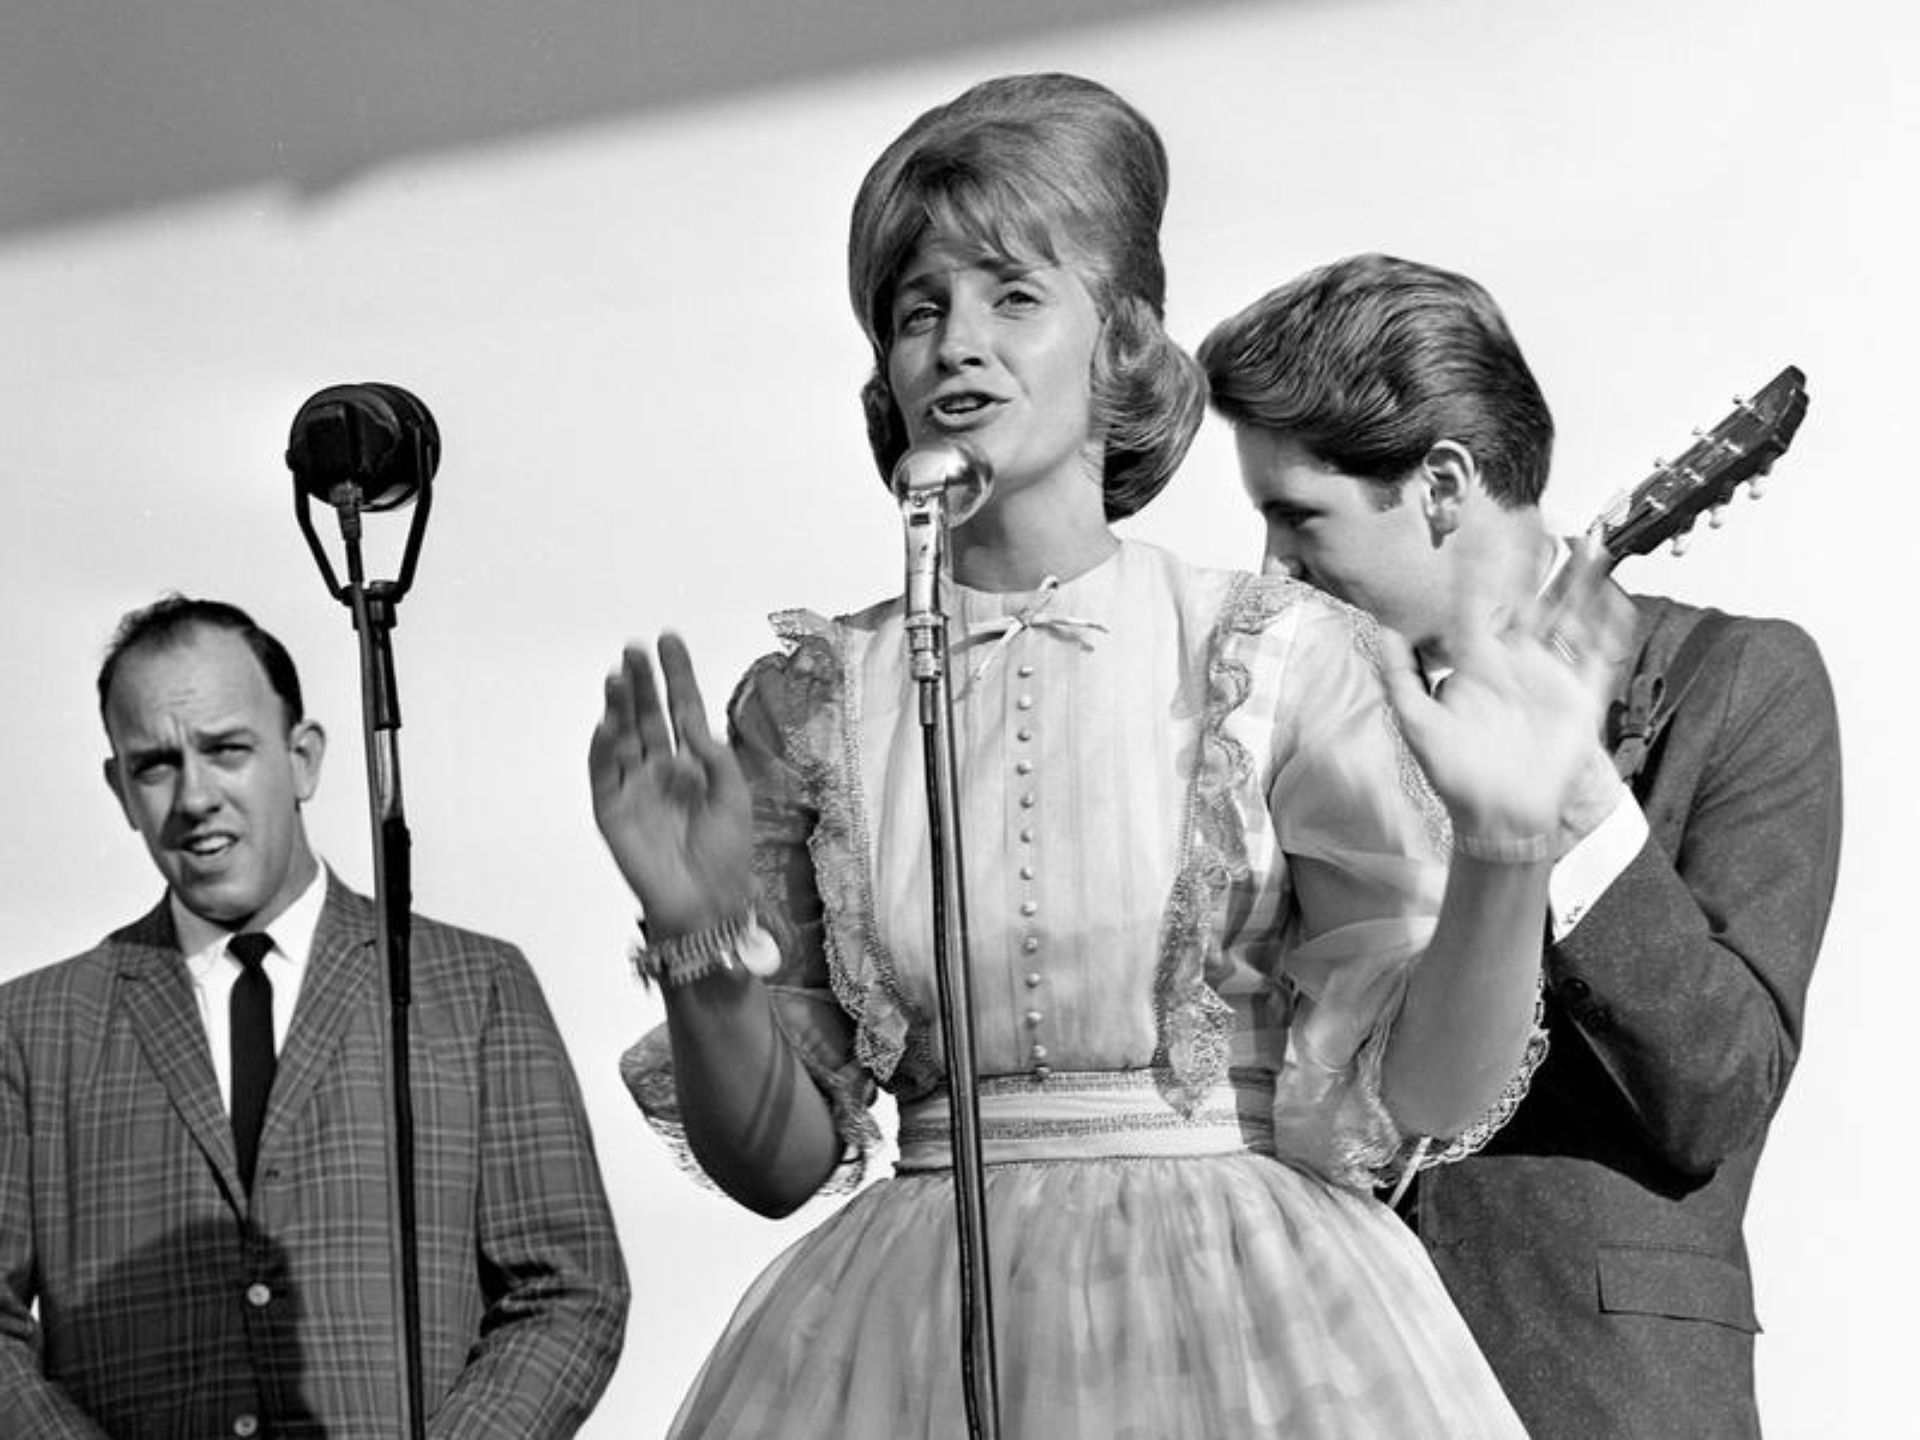 Skeeter Davis, who only been on the Grand Ole Opry since 1959, packed them in for her performance during The Nashville Tennessean Centennial...